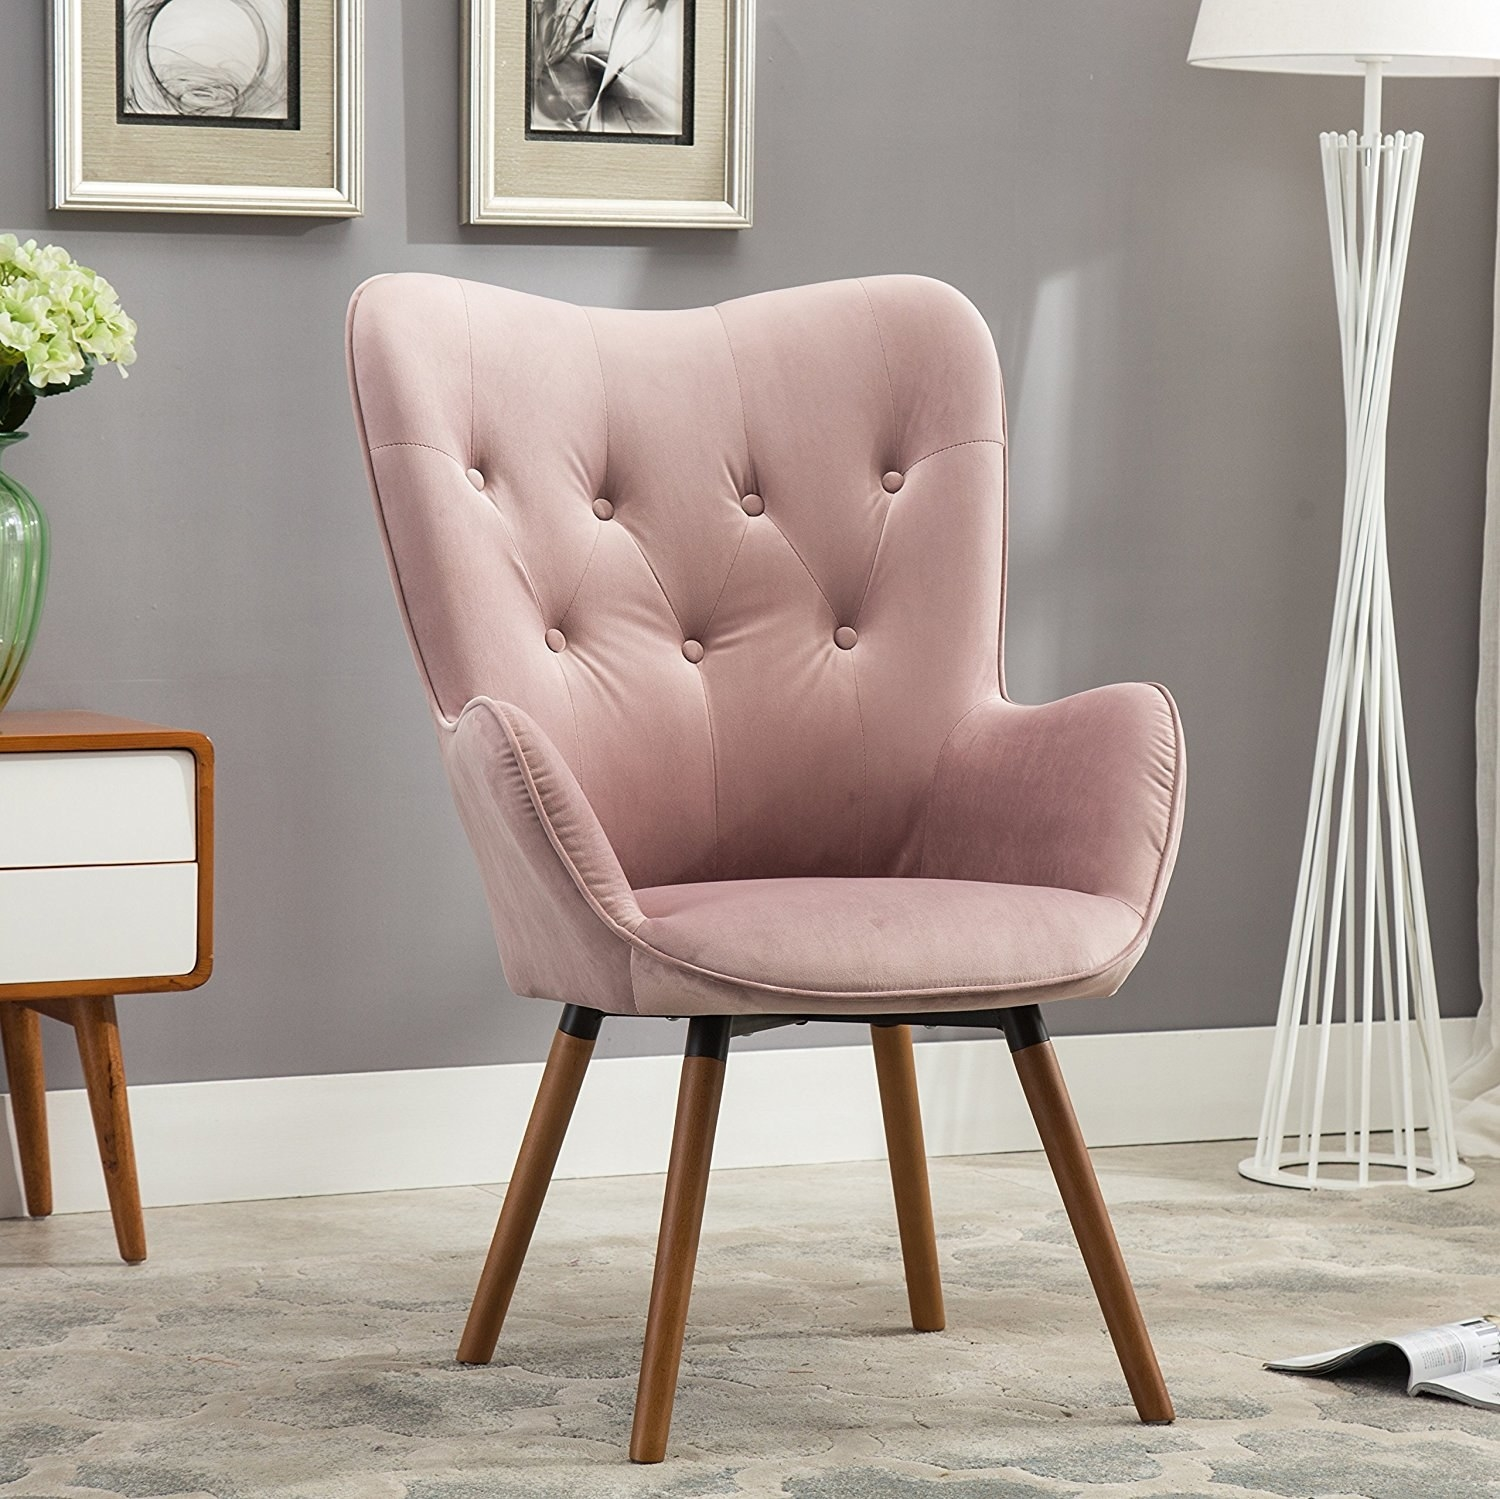 A Velvet Button Back Accent Chair Thatu0027ll Give Your Bum The Plush Treatment  It Deserves.